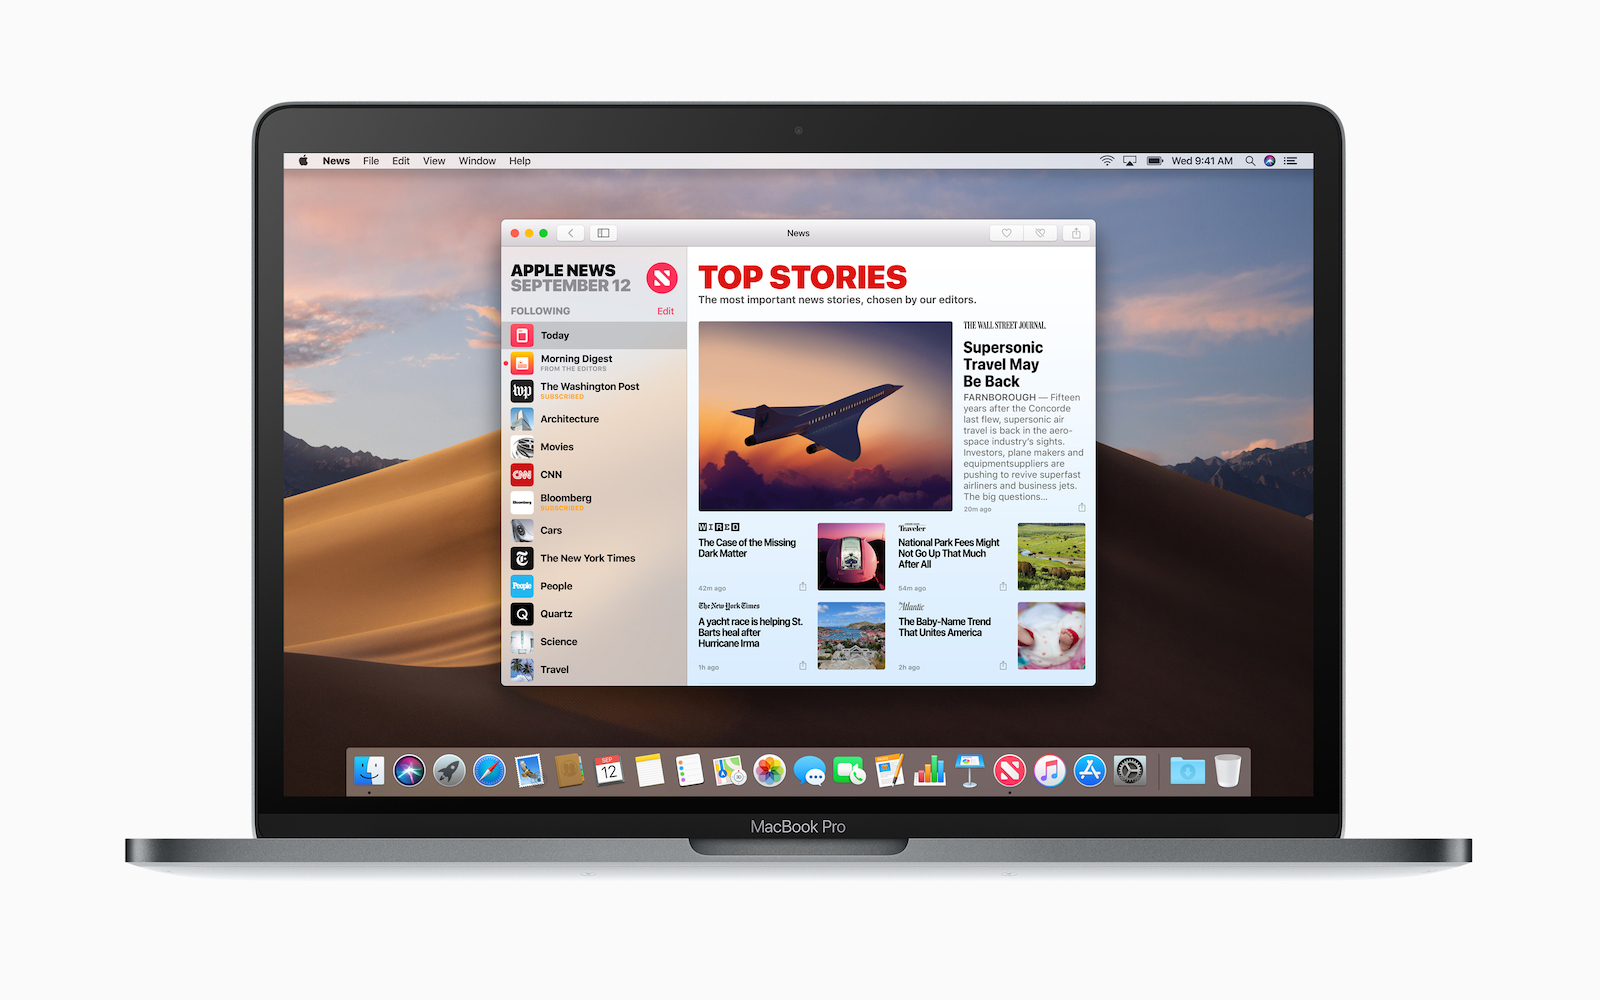 Apple Macbook Pro macOS Mojave News screen 09242018